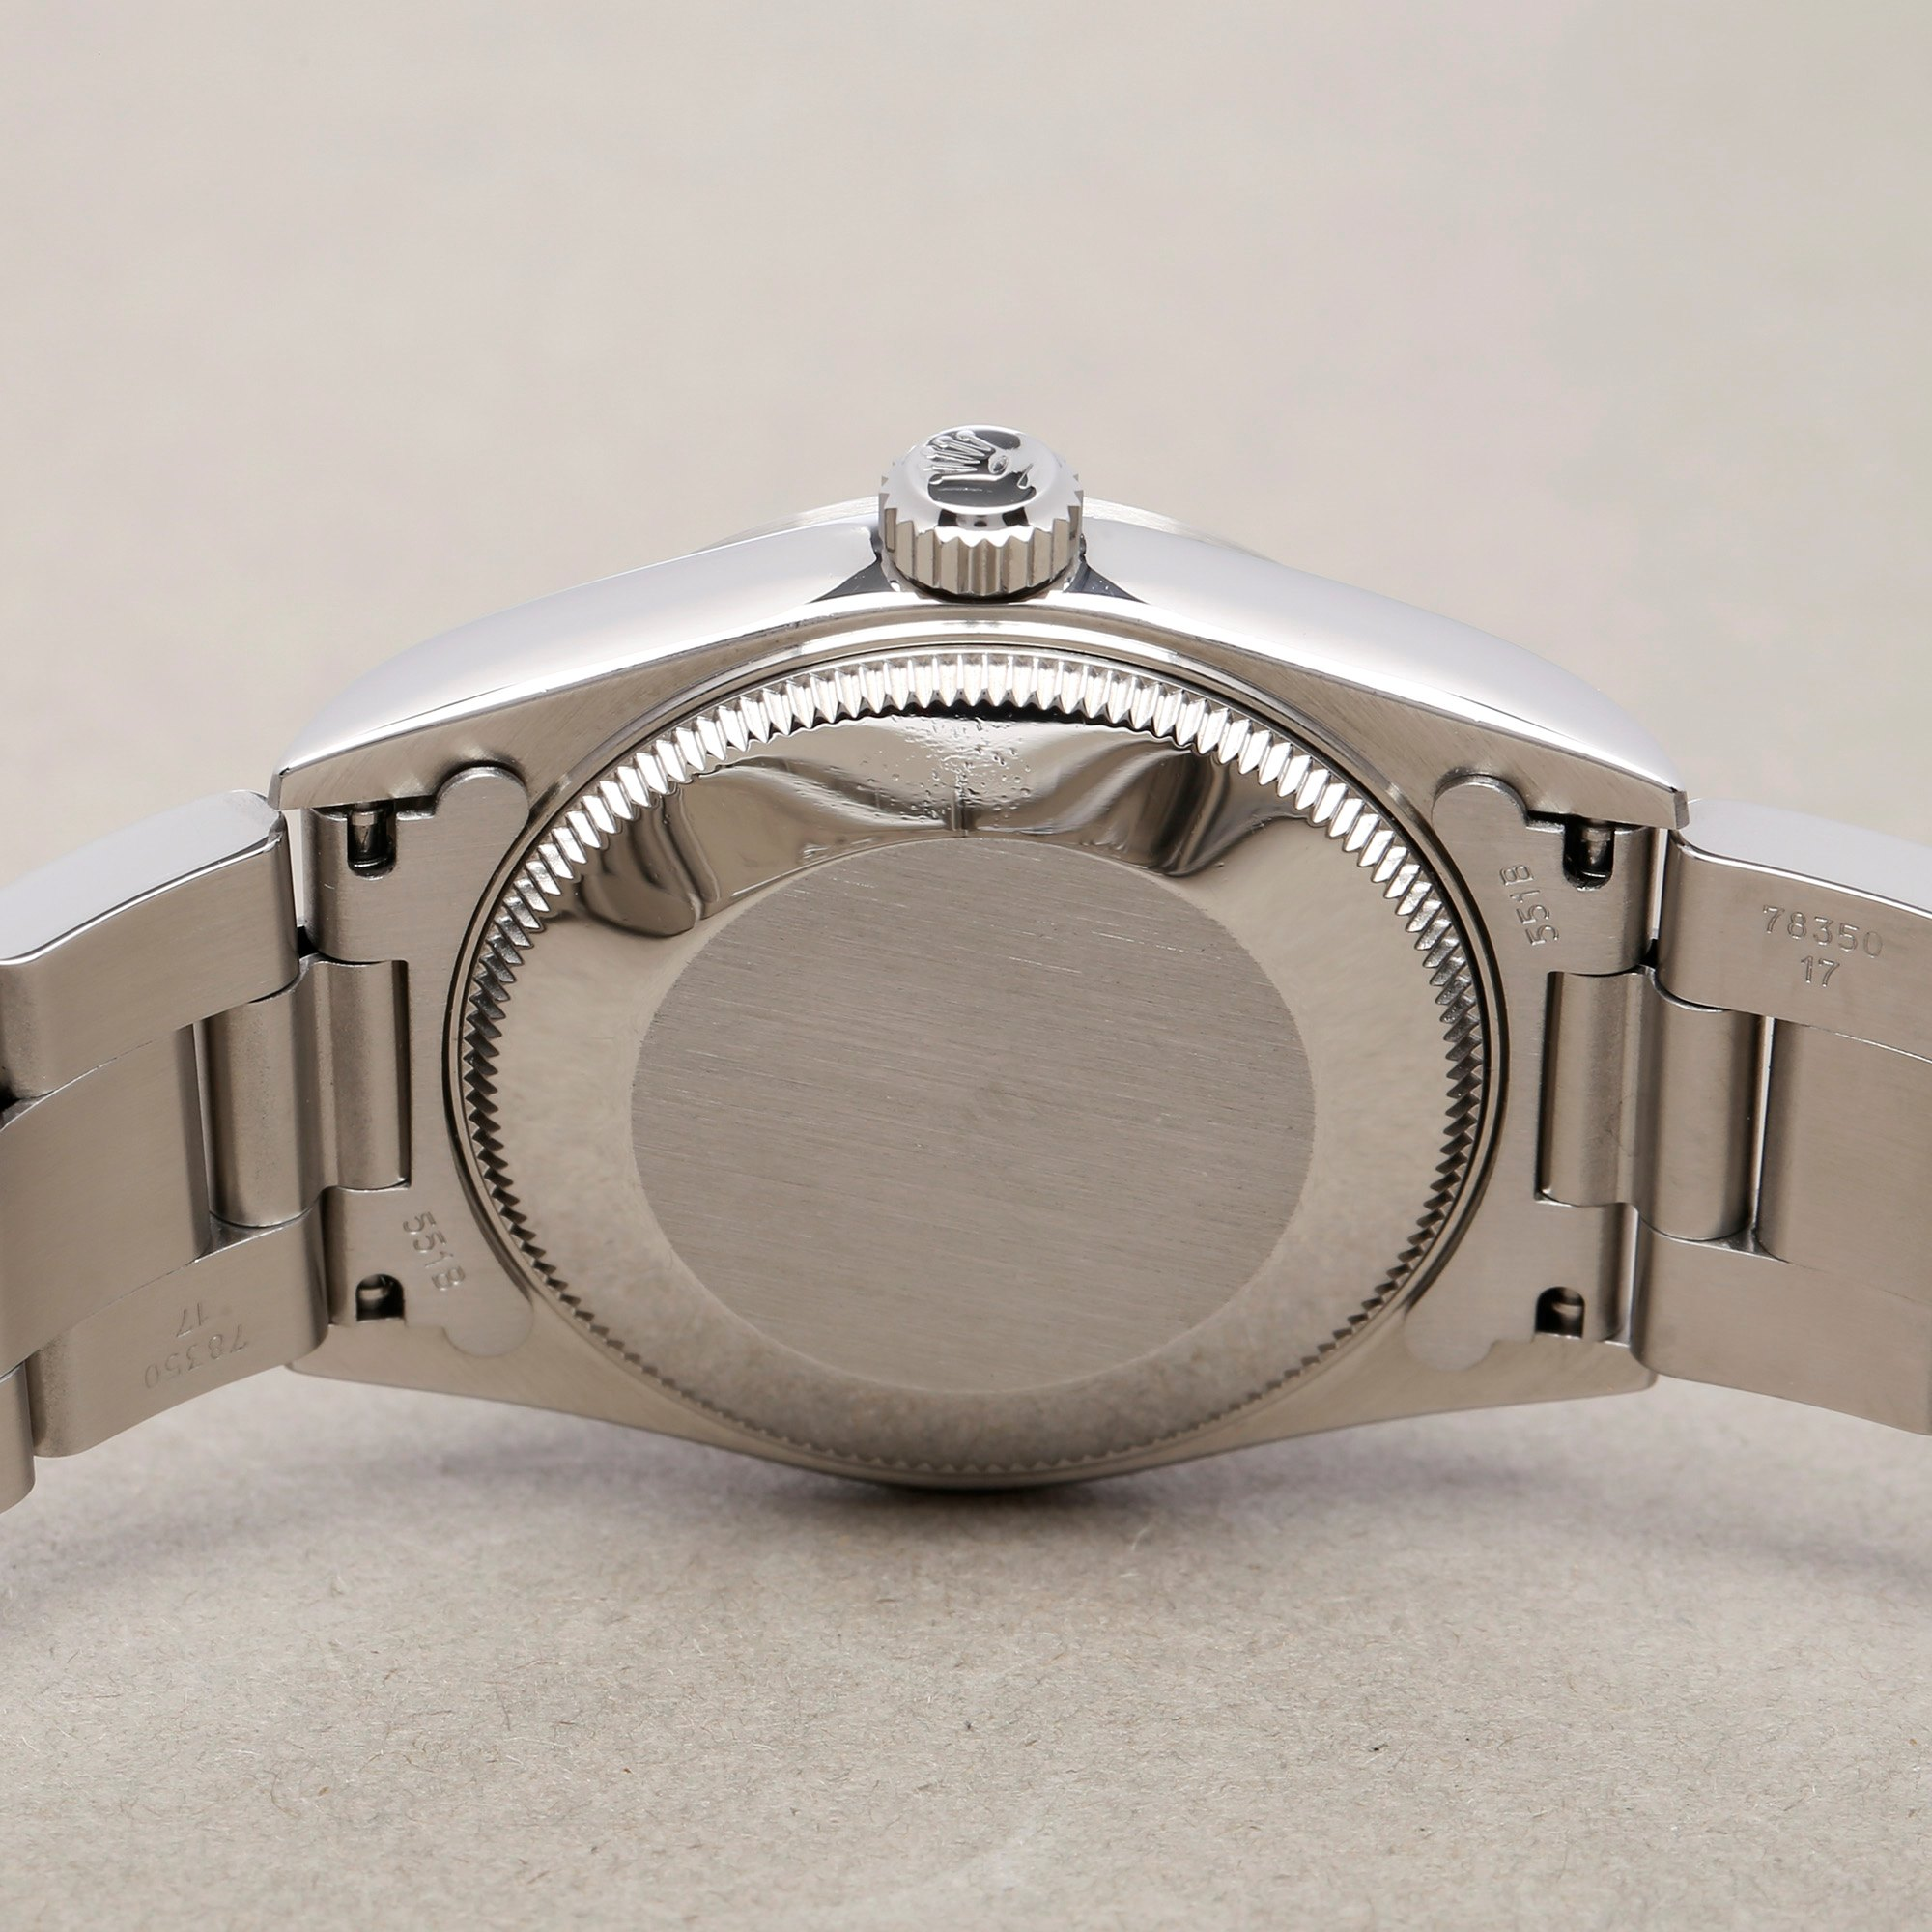 Rolex Datejust 31 78240 Ladies Stainless Steel Watch - Image 4 of 10